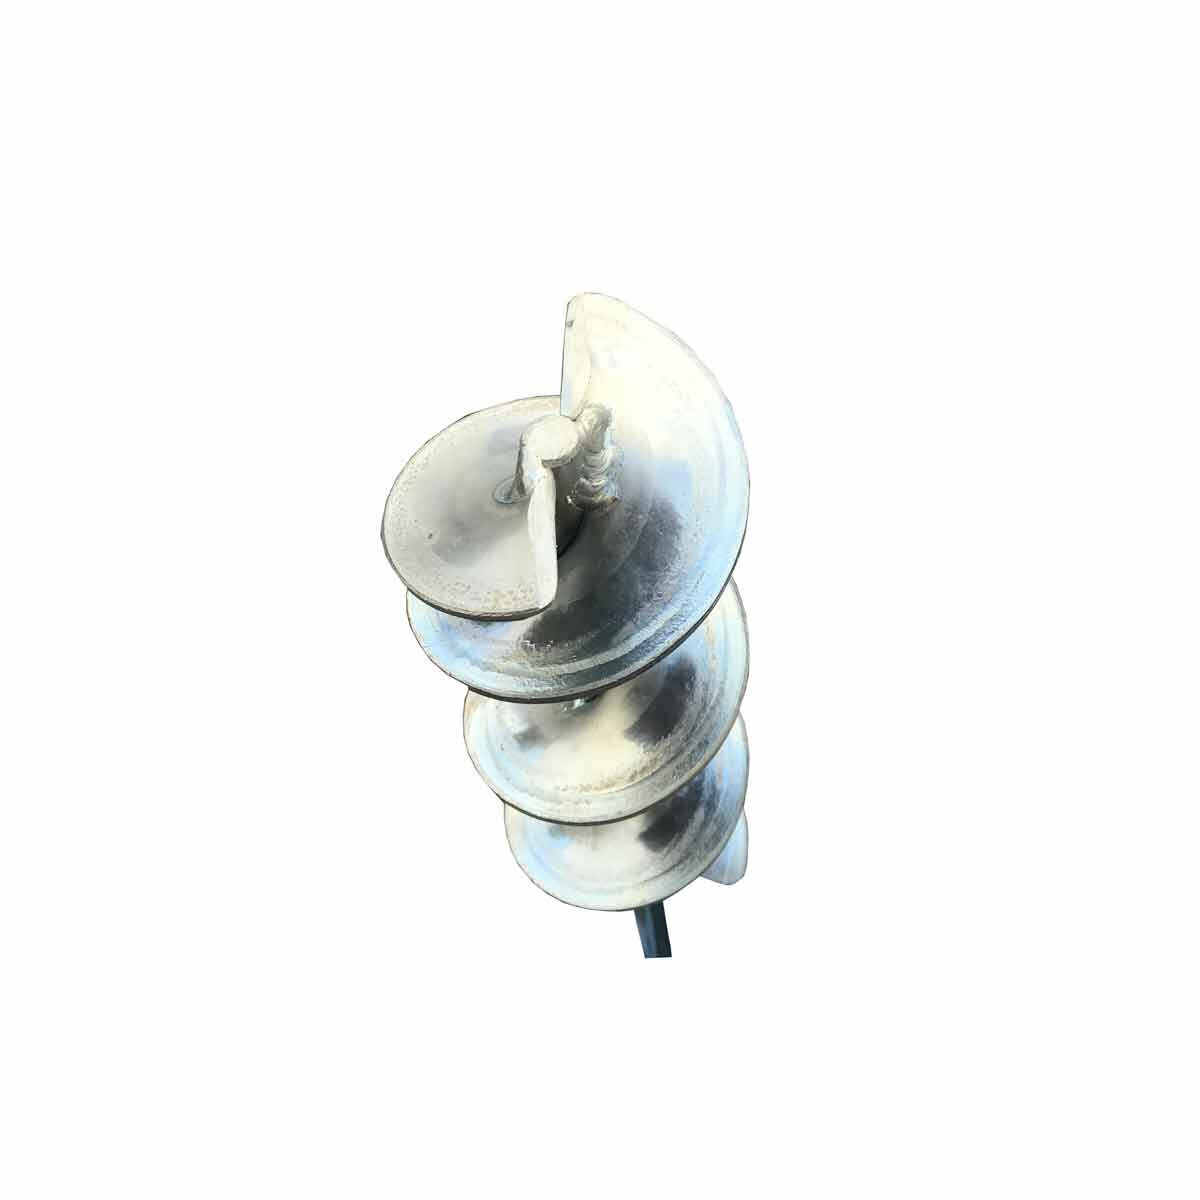 Bucket Mortar Mixer tile setters and stone masons mixer for mixing dry pack mortar in a bucket